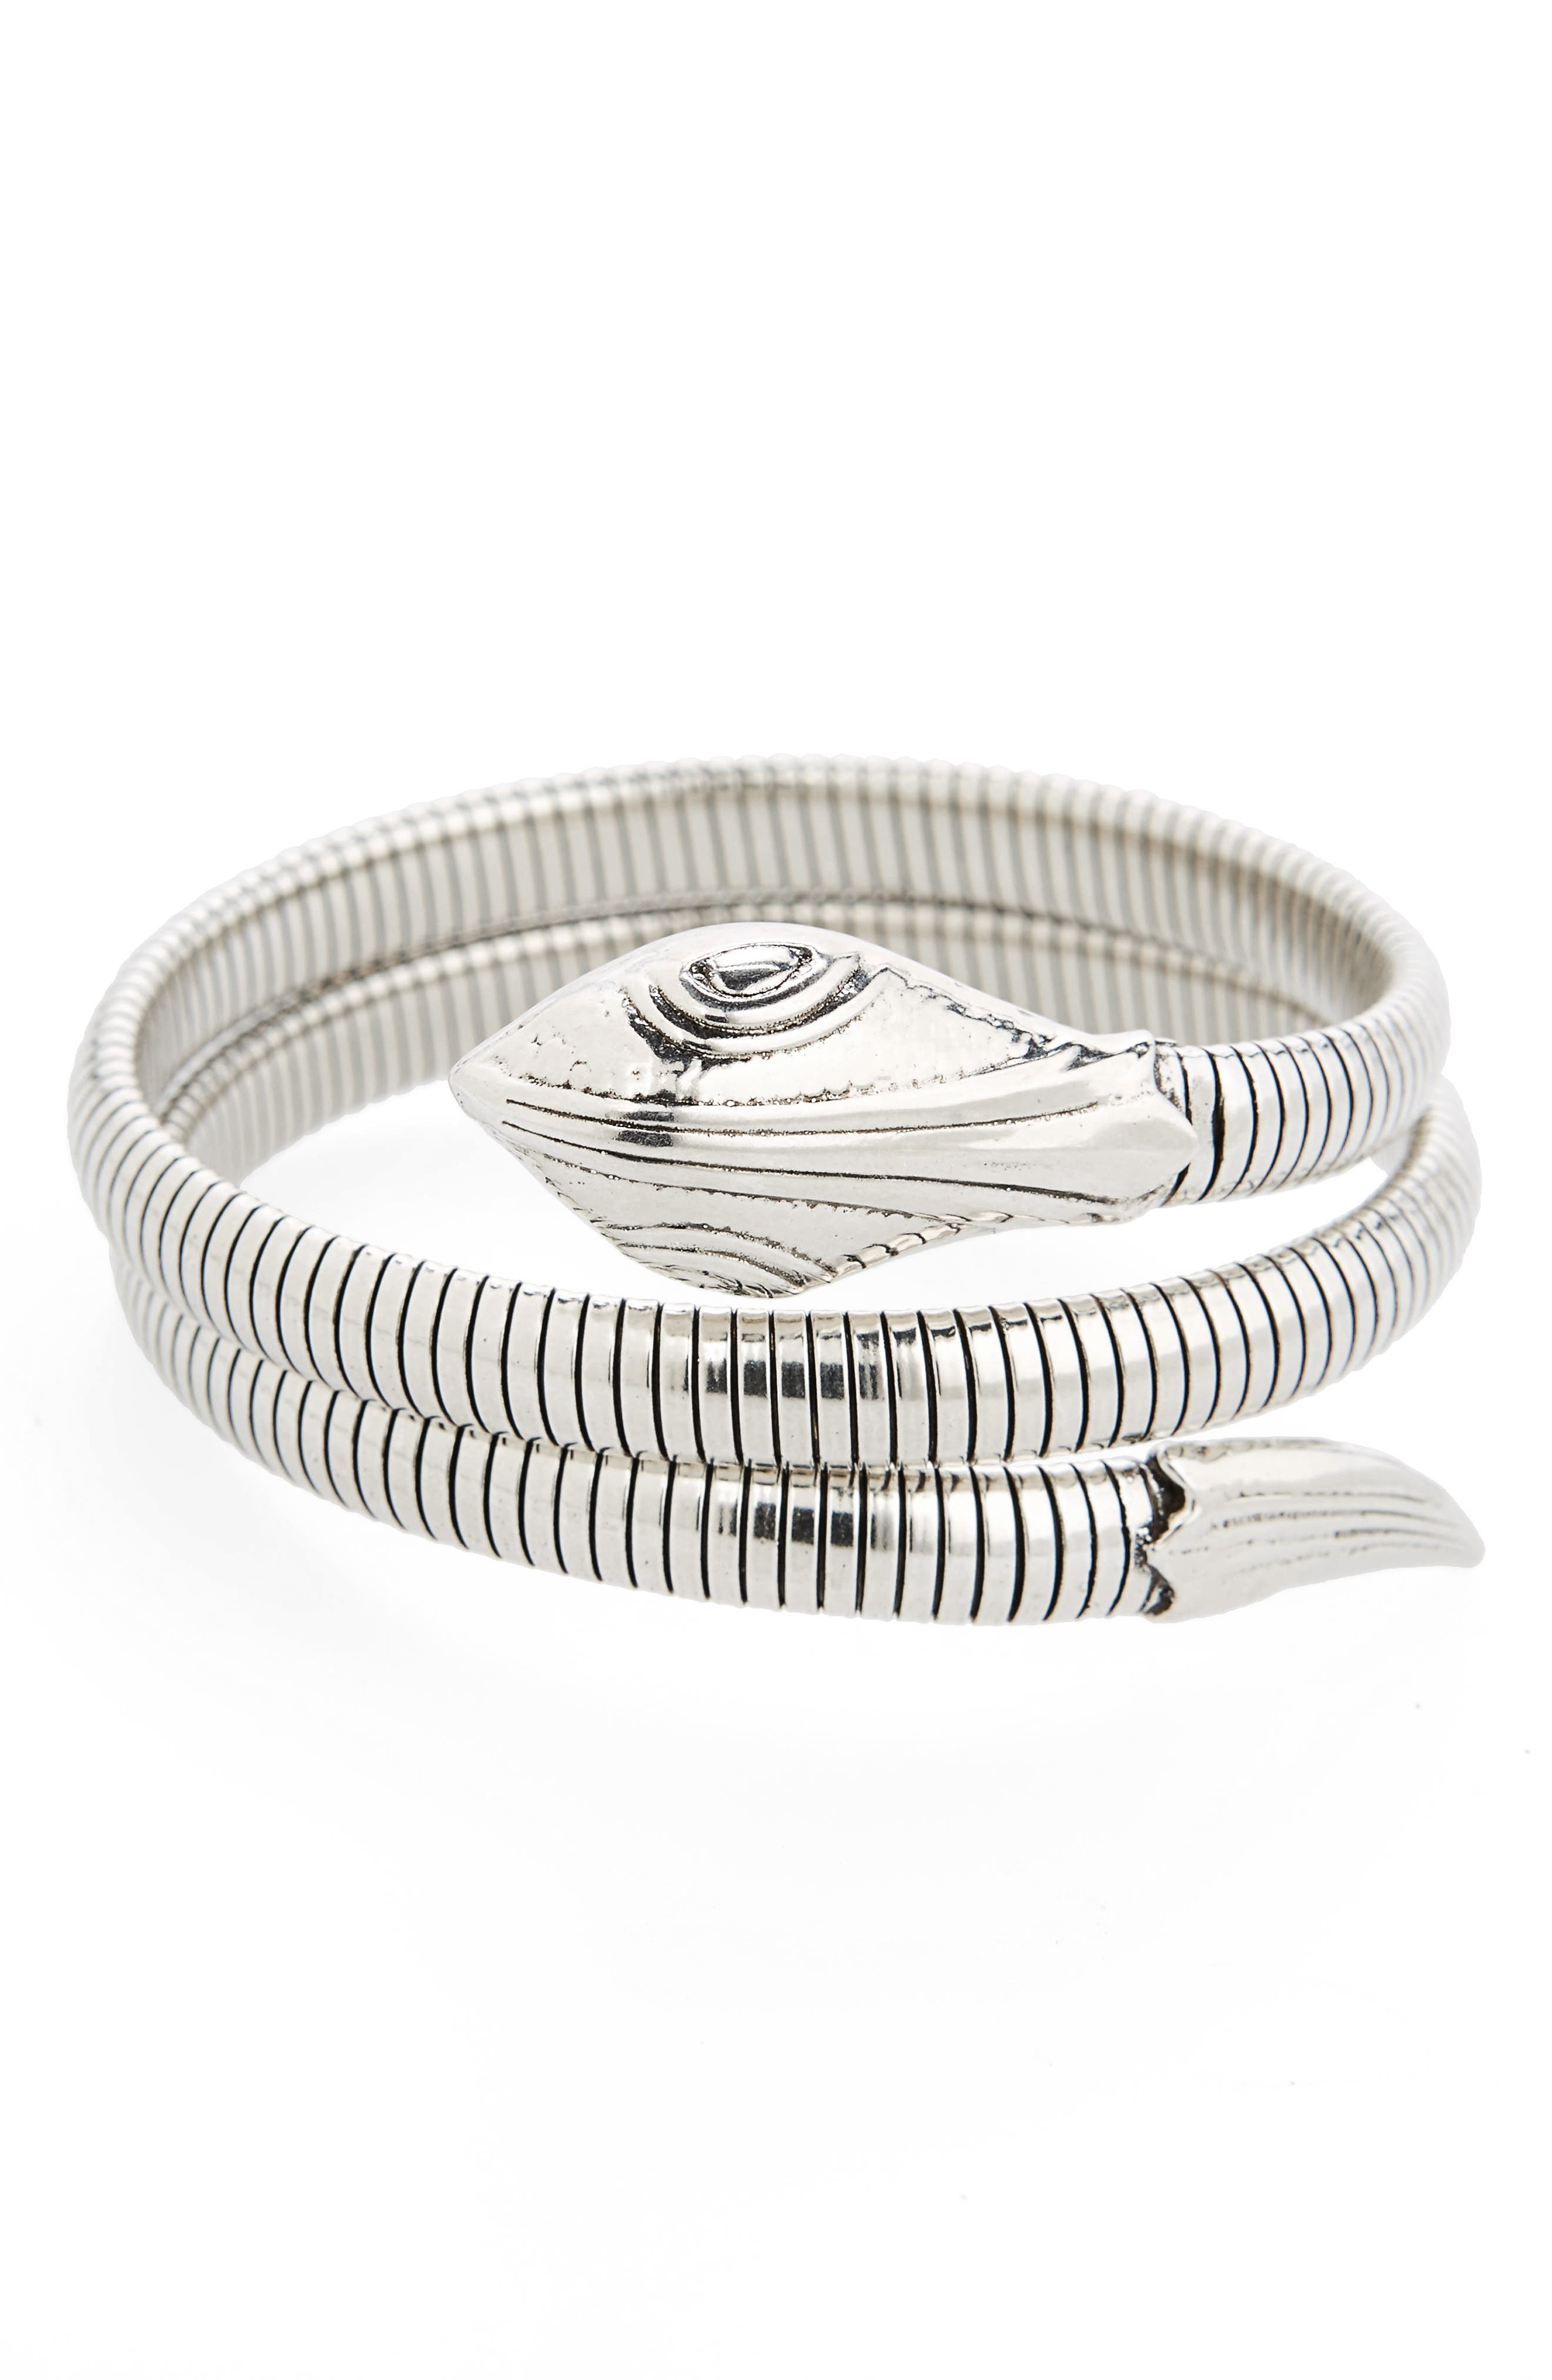 Snake Wrap Bracelet,                         Main,                         color, 040